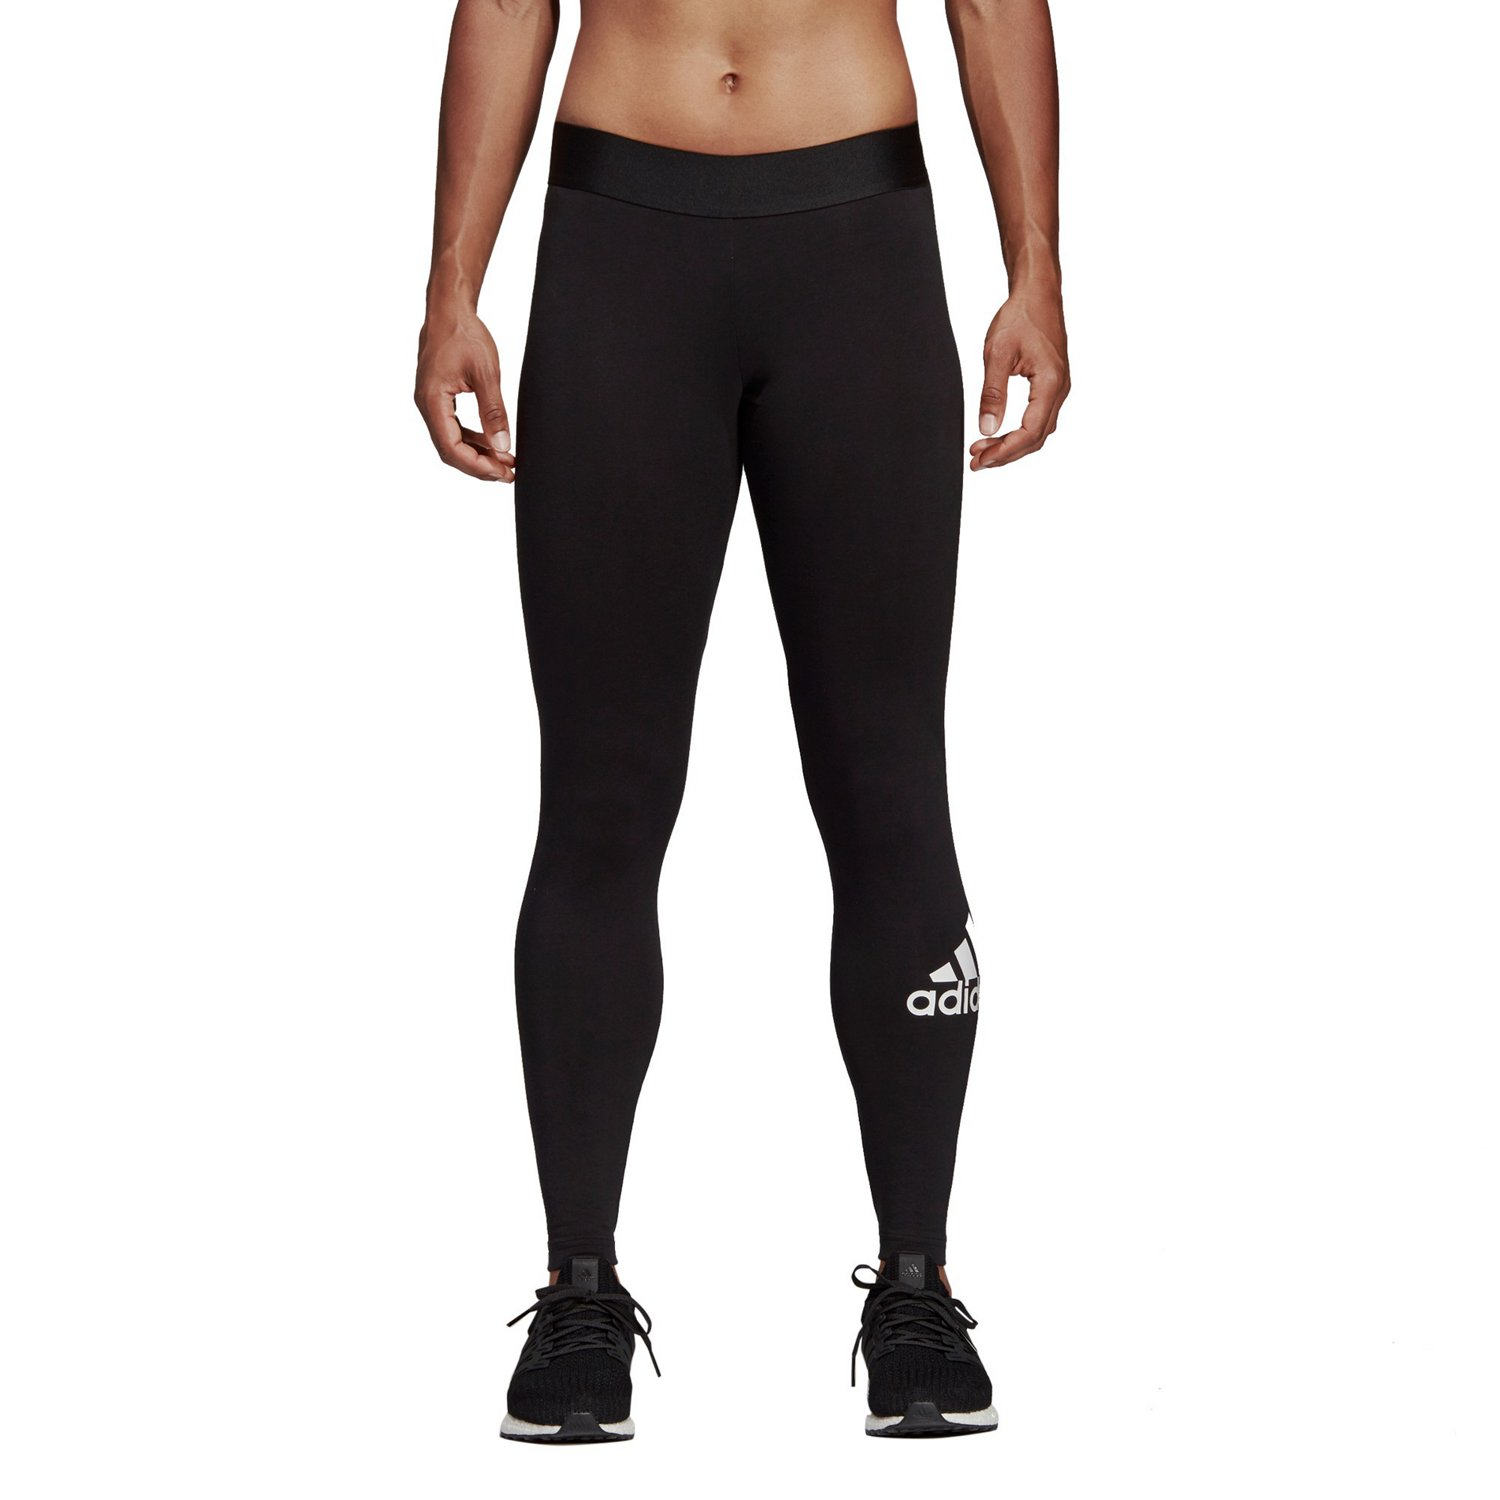 c84fc7ab95d adidas Women's Must Haves Badge of Sport Tights